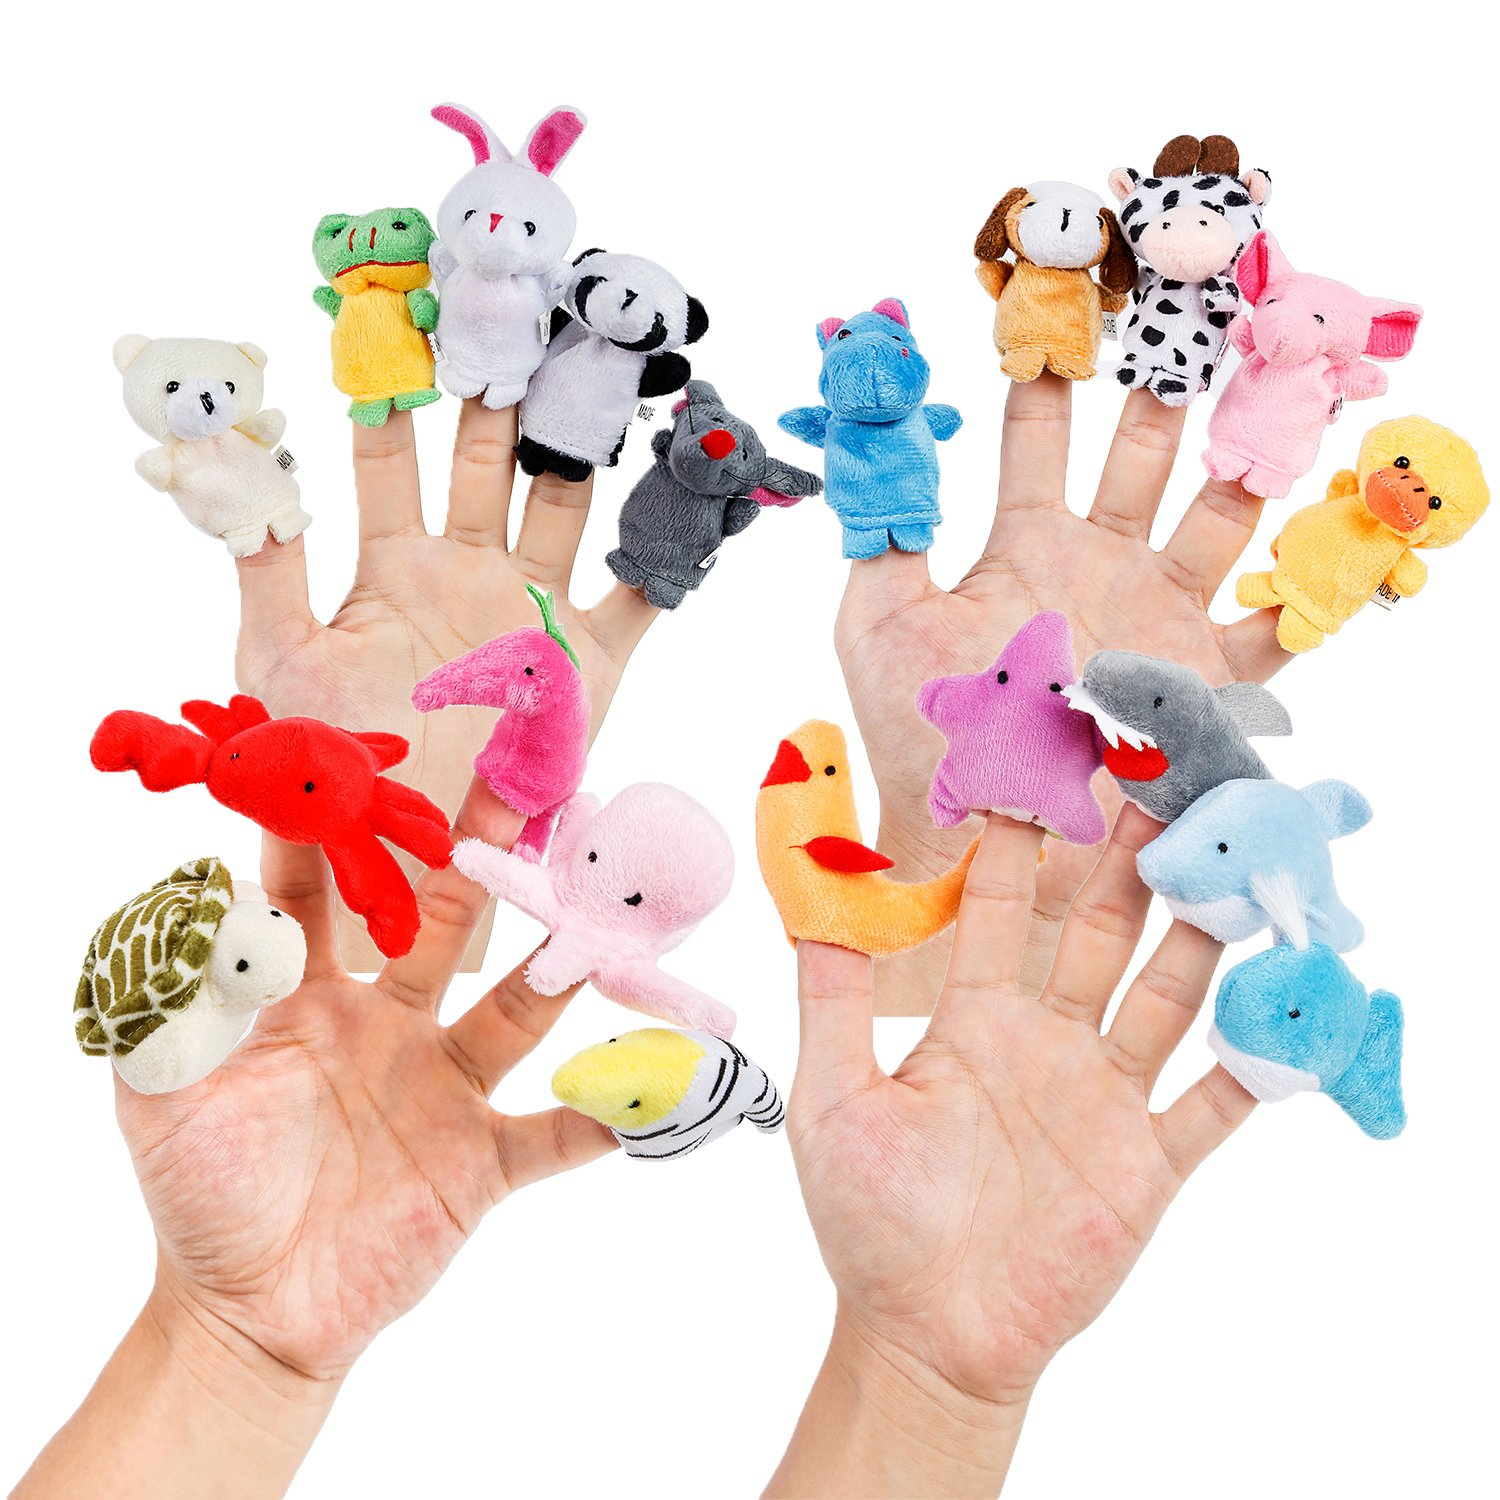 Oiuros 20pcs Different Cartoon Animal Finger Puppets Soft Velvet Dolls Props Toys